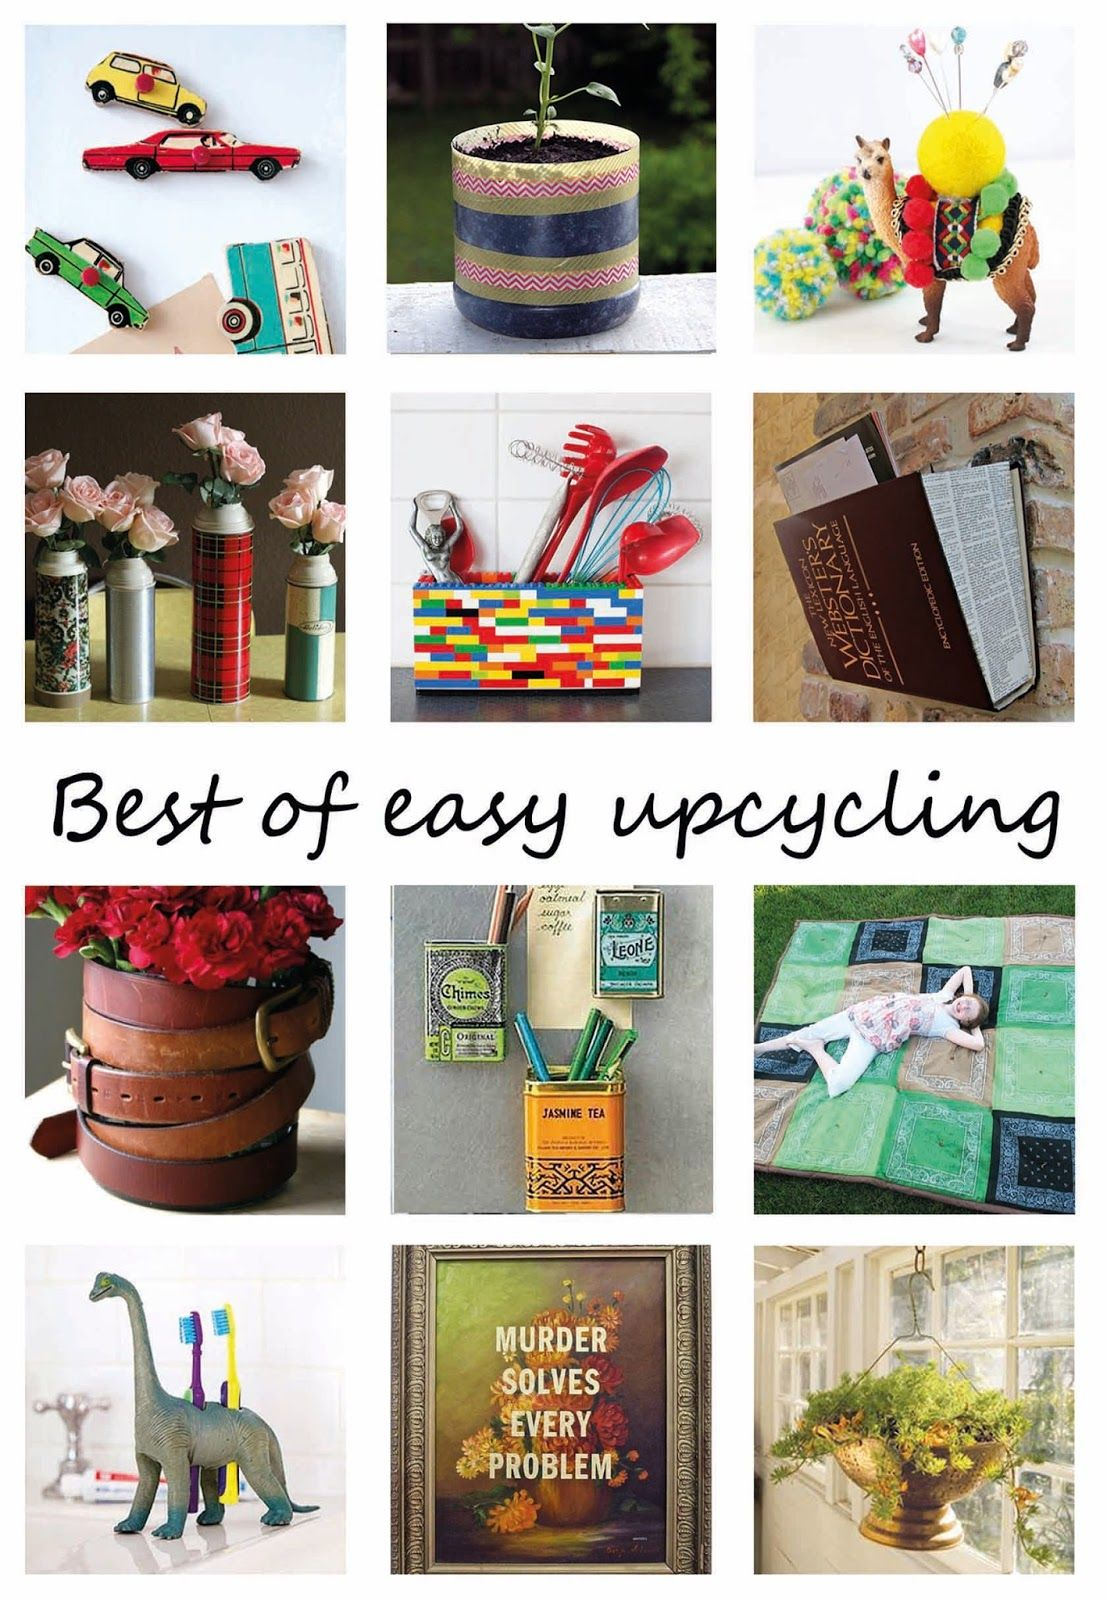 DIYcraft: Upcycling is great and fun but the best upcycling